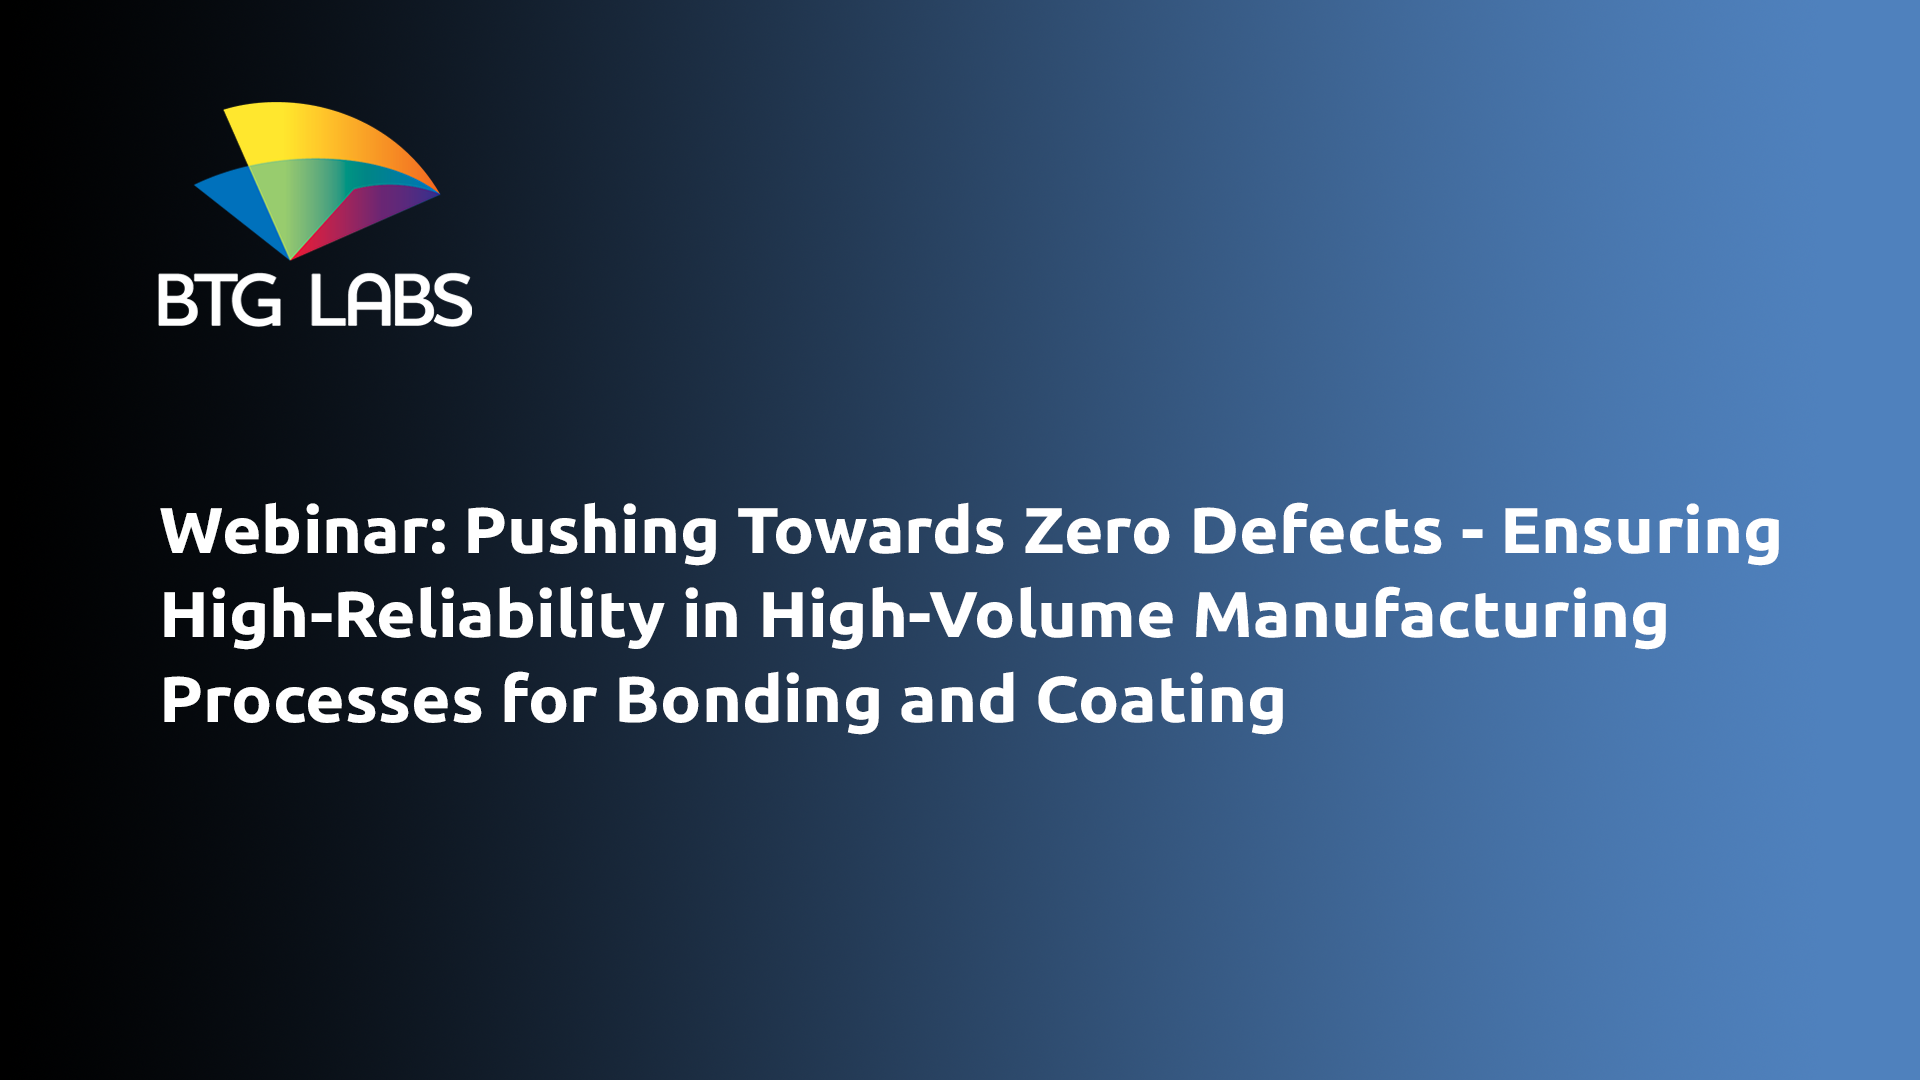 pushing-towards-zero-defects-ensuring-high-reliability-webinar